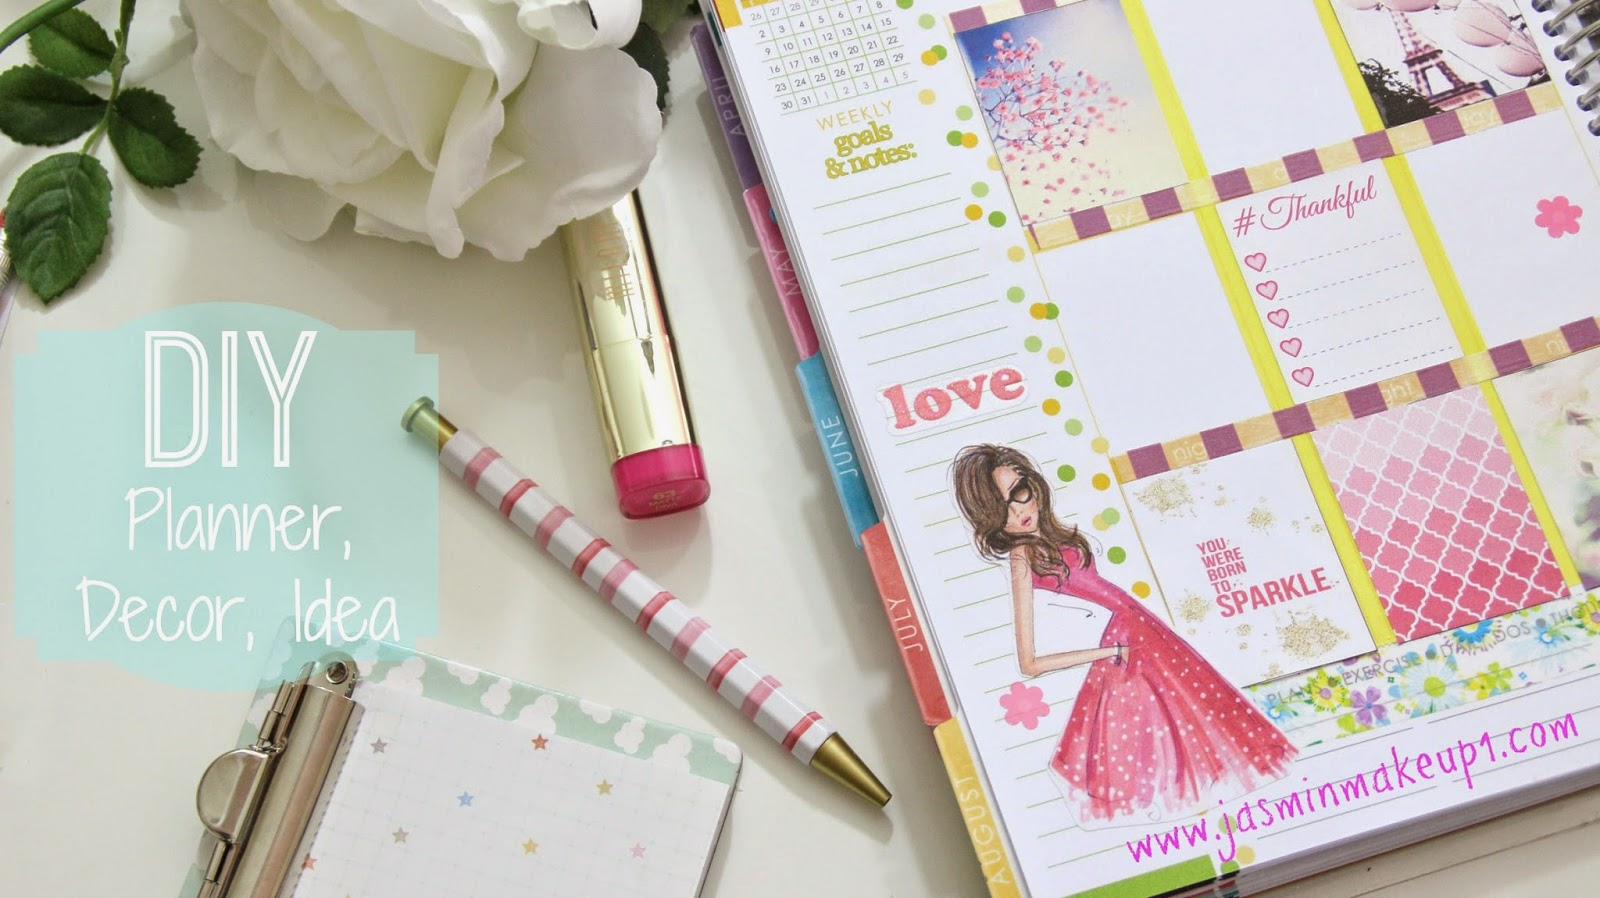 Diy decoraci n de agenda planner ideas jasminmakeup1 for Decoracion pagina